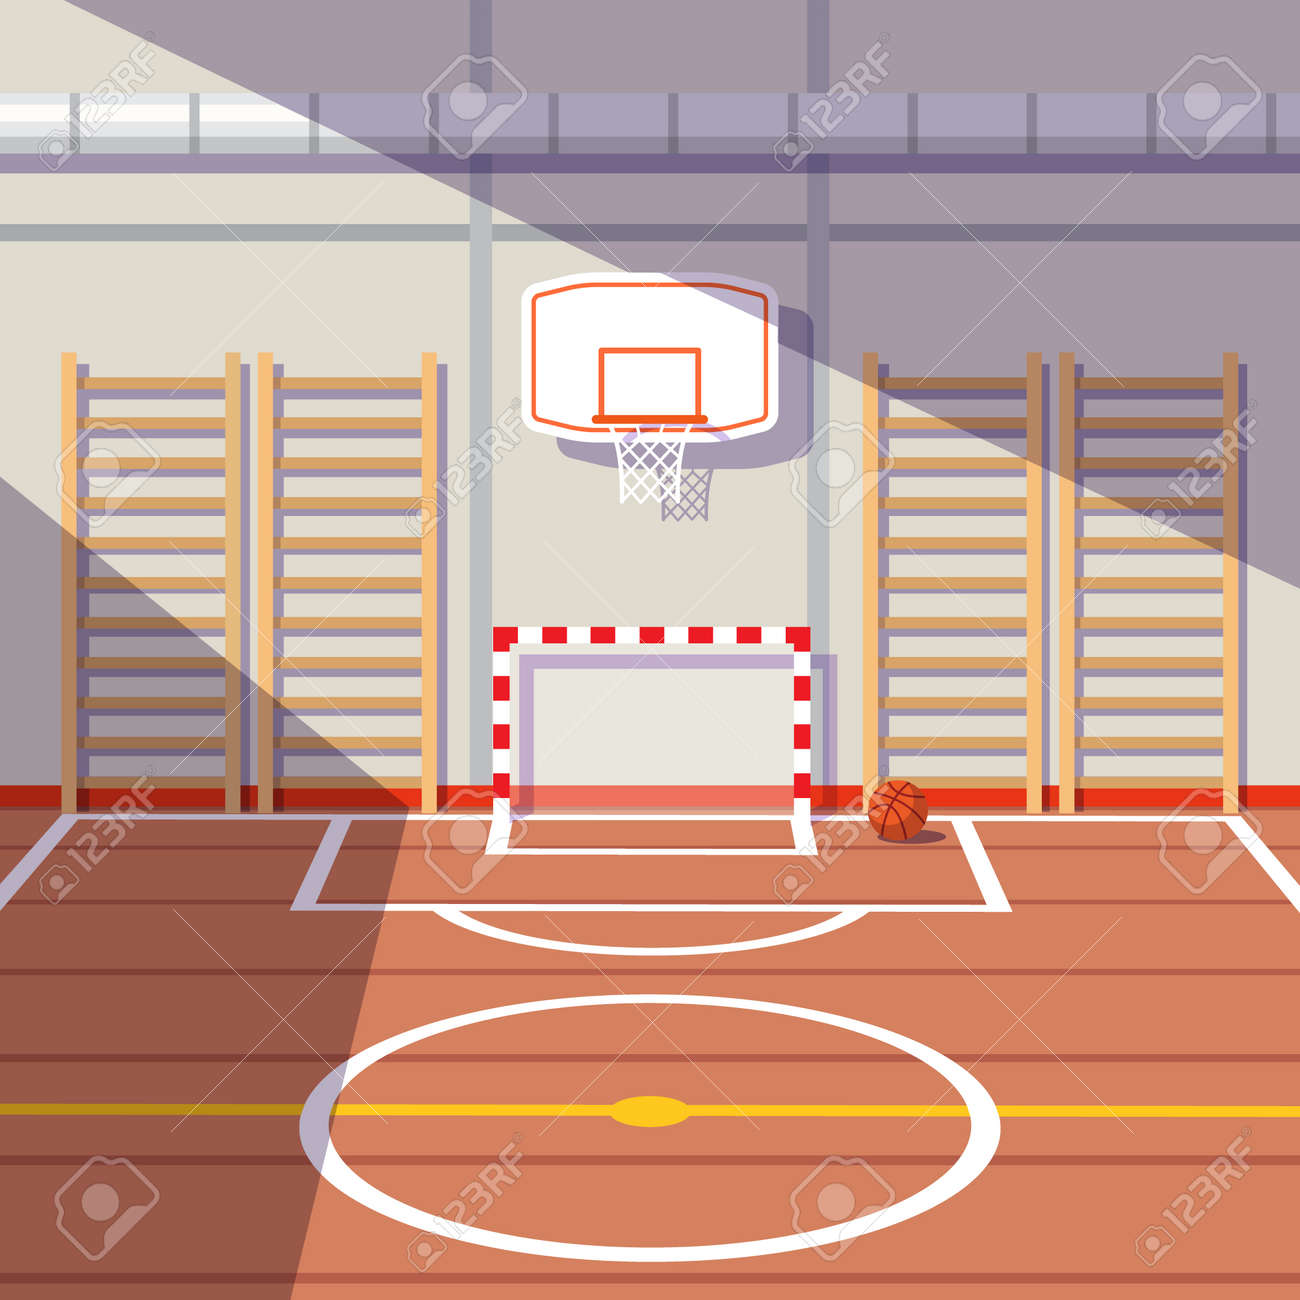 sun lit school or university gym hall with soccer goal and